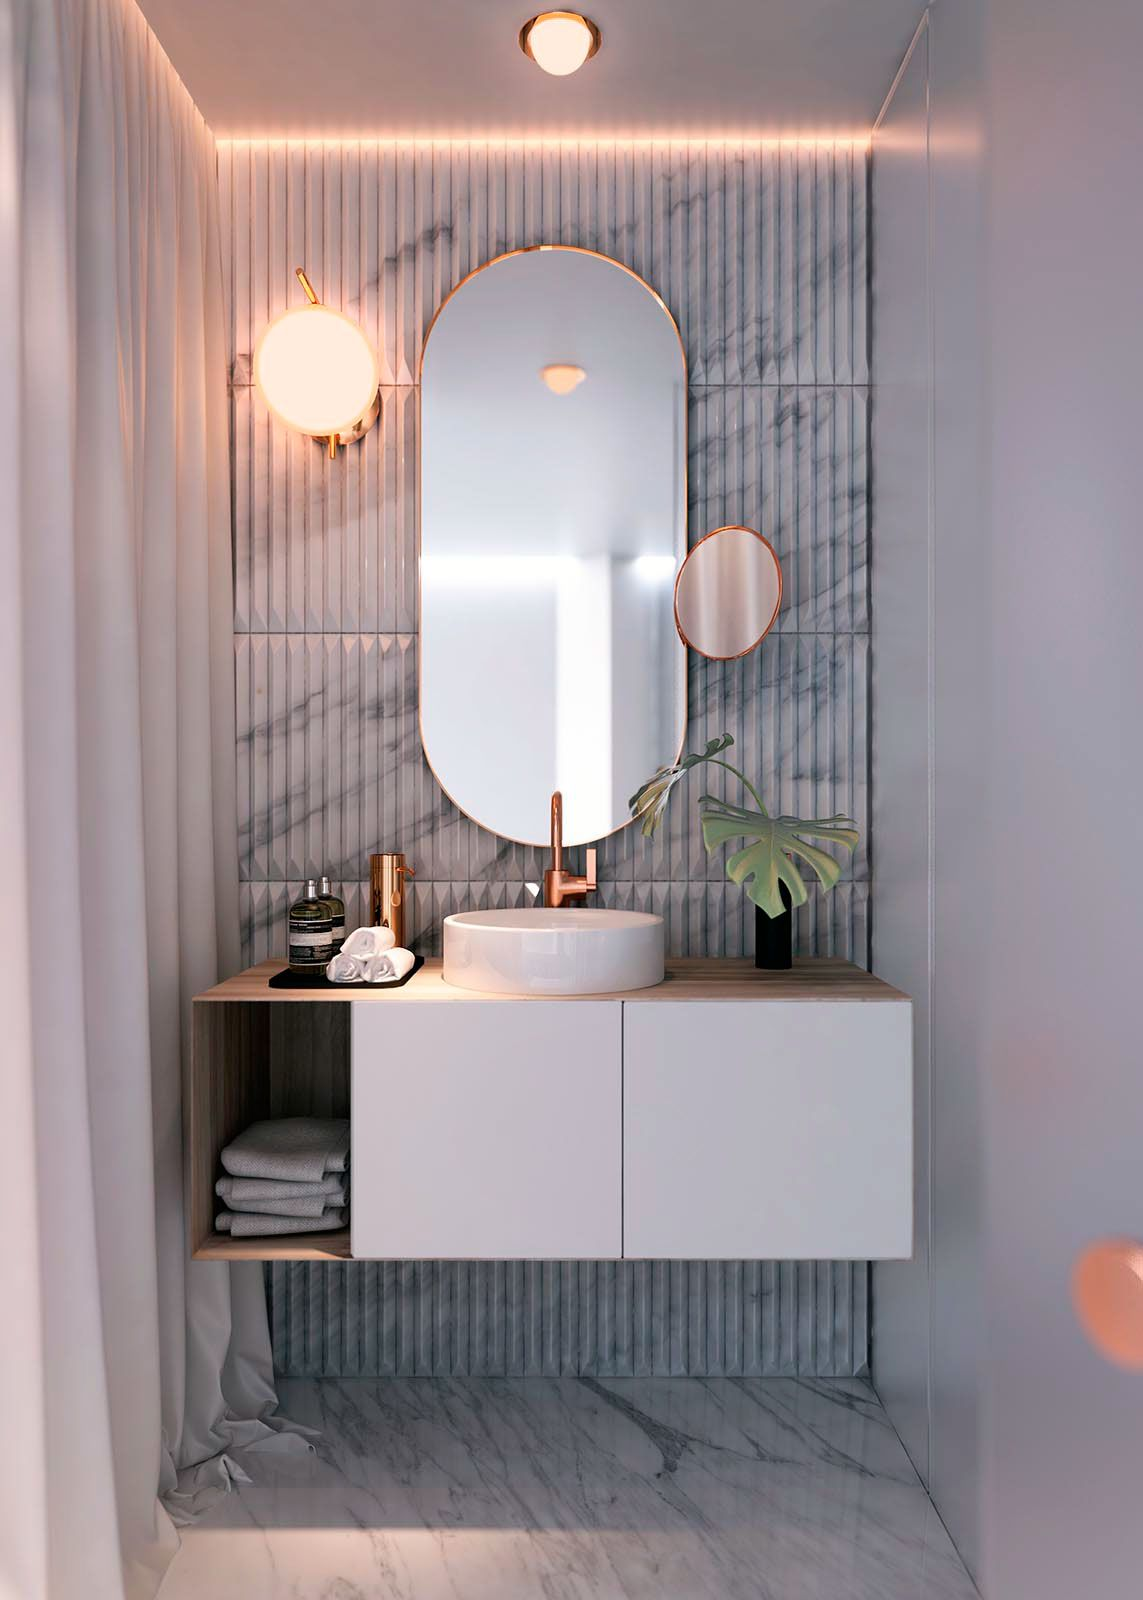 Studio Suite Hotel Room This Project Was Worked Out In I Am Associates Istanbul Small Bathroom Furniture Bathroom Interior Bathroom Styling